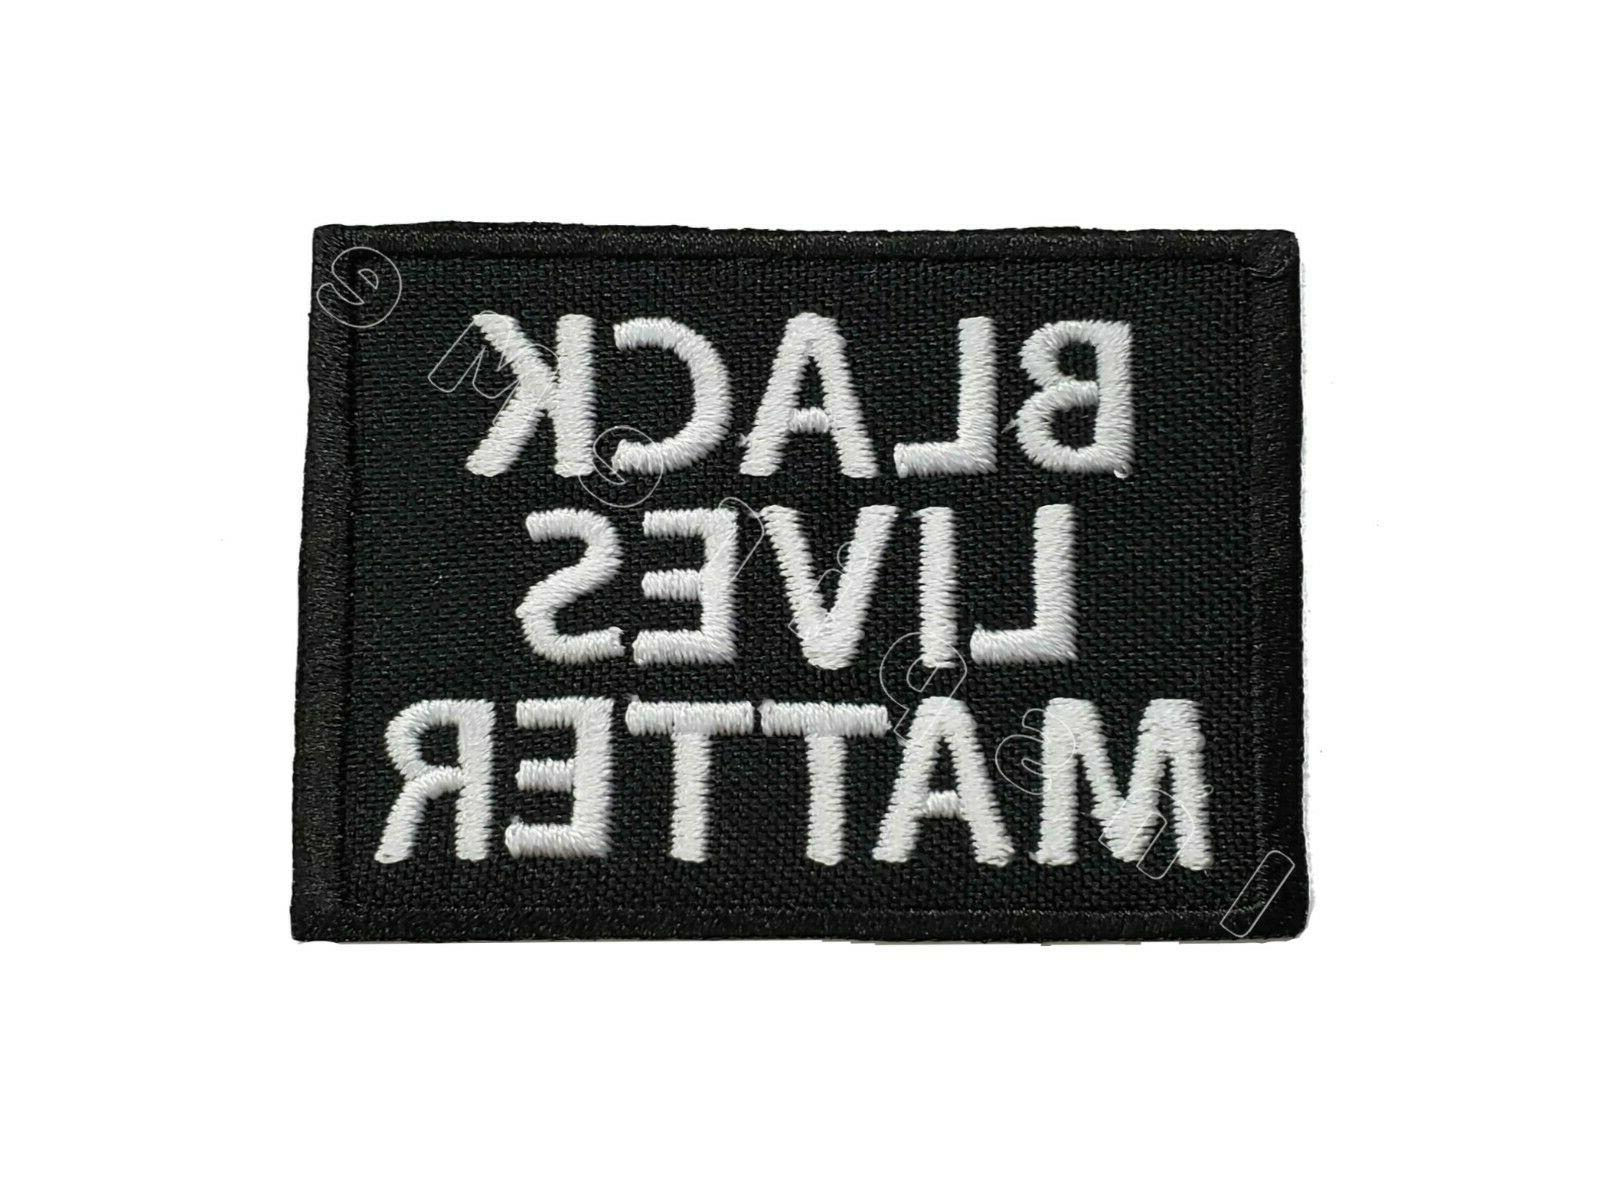 black lives matter embroidered sew iron on